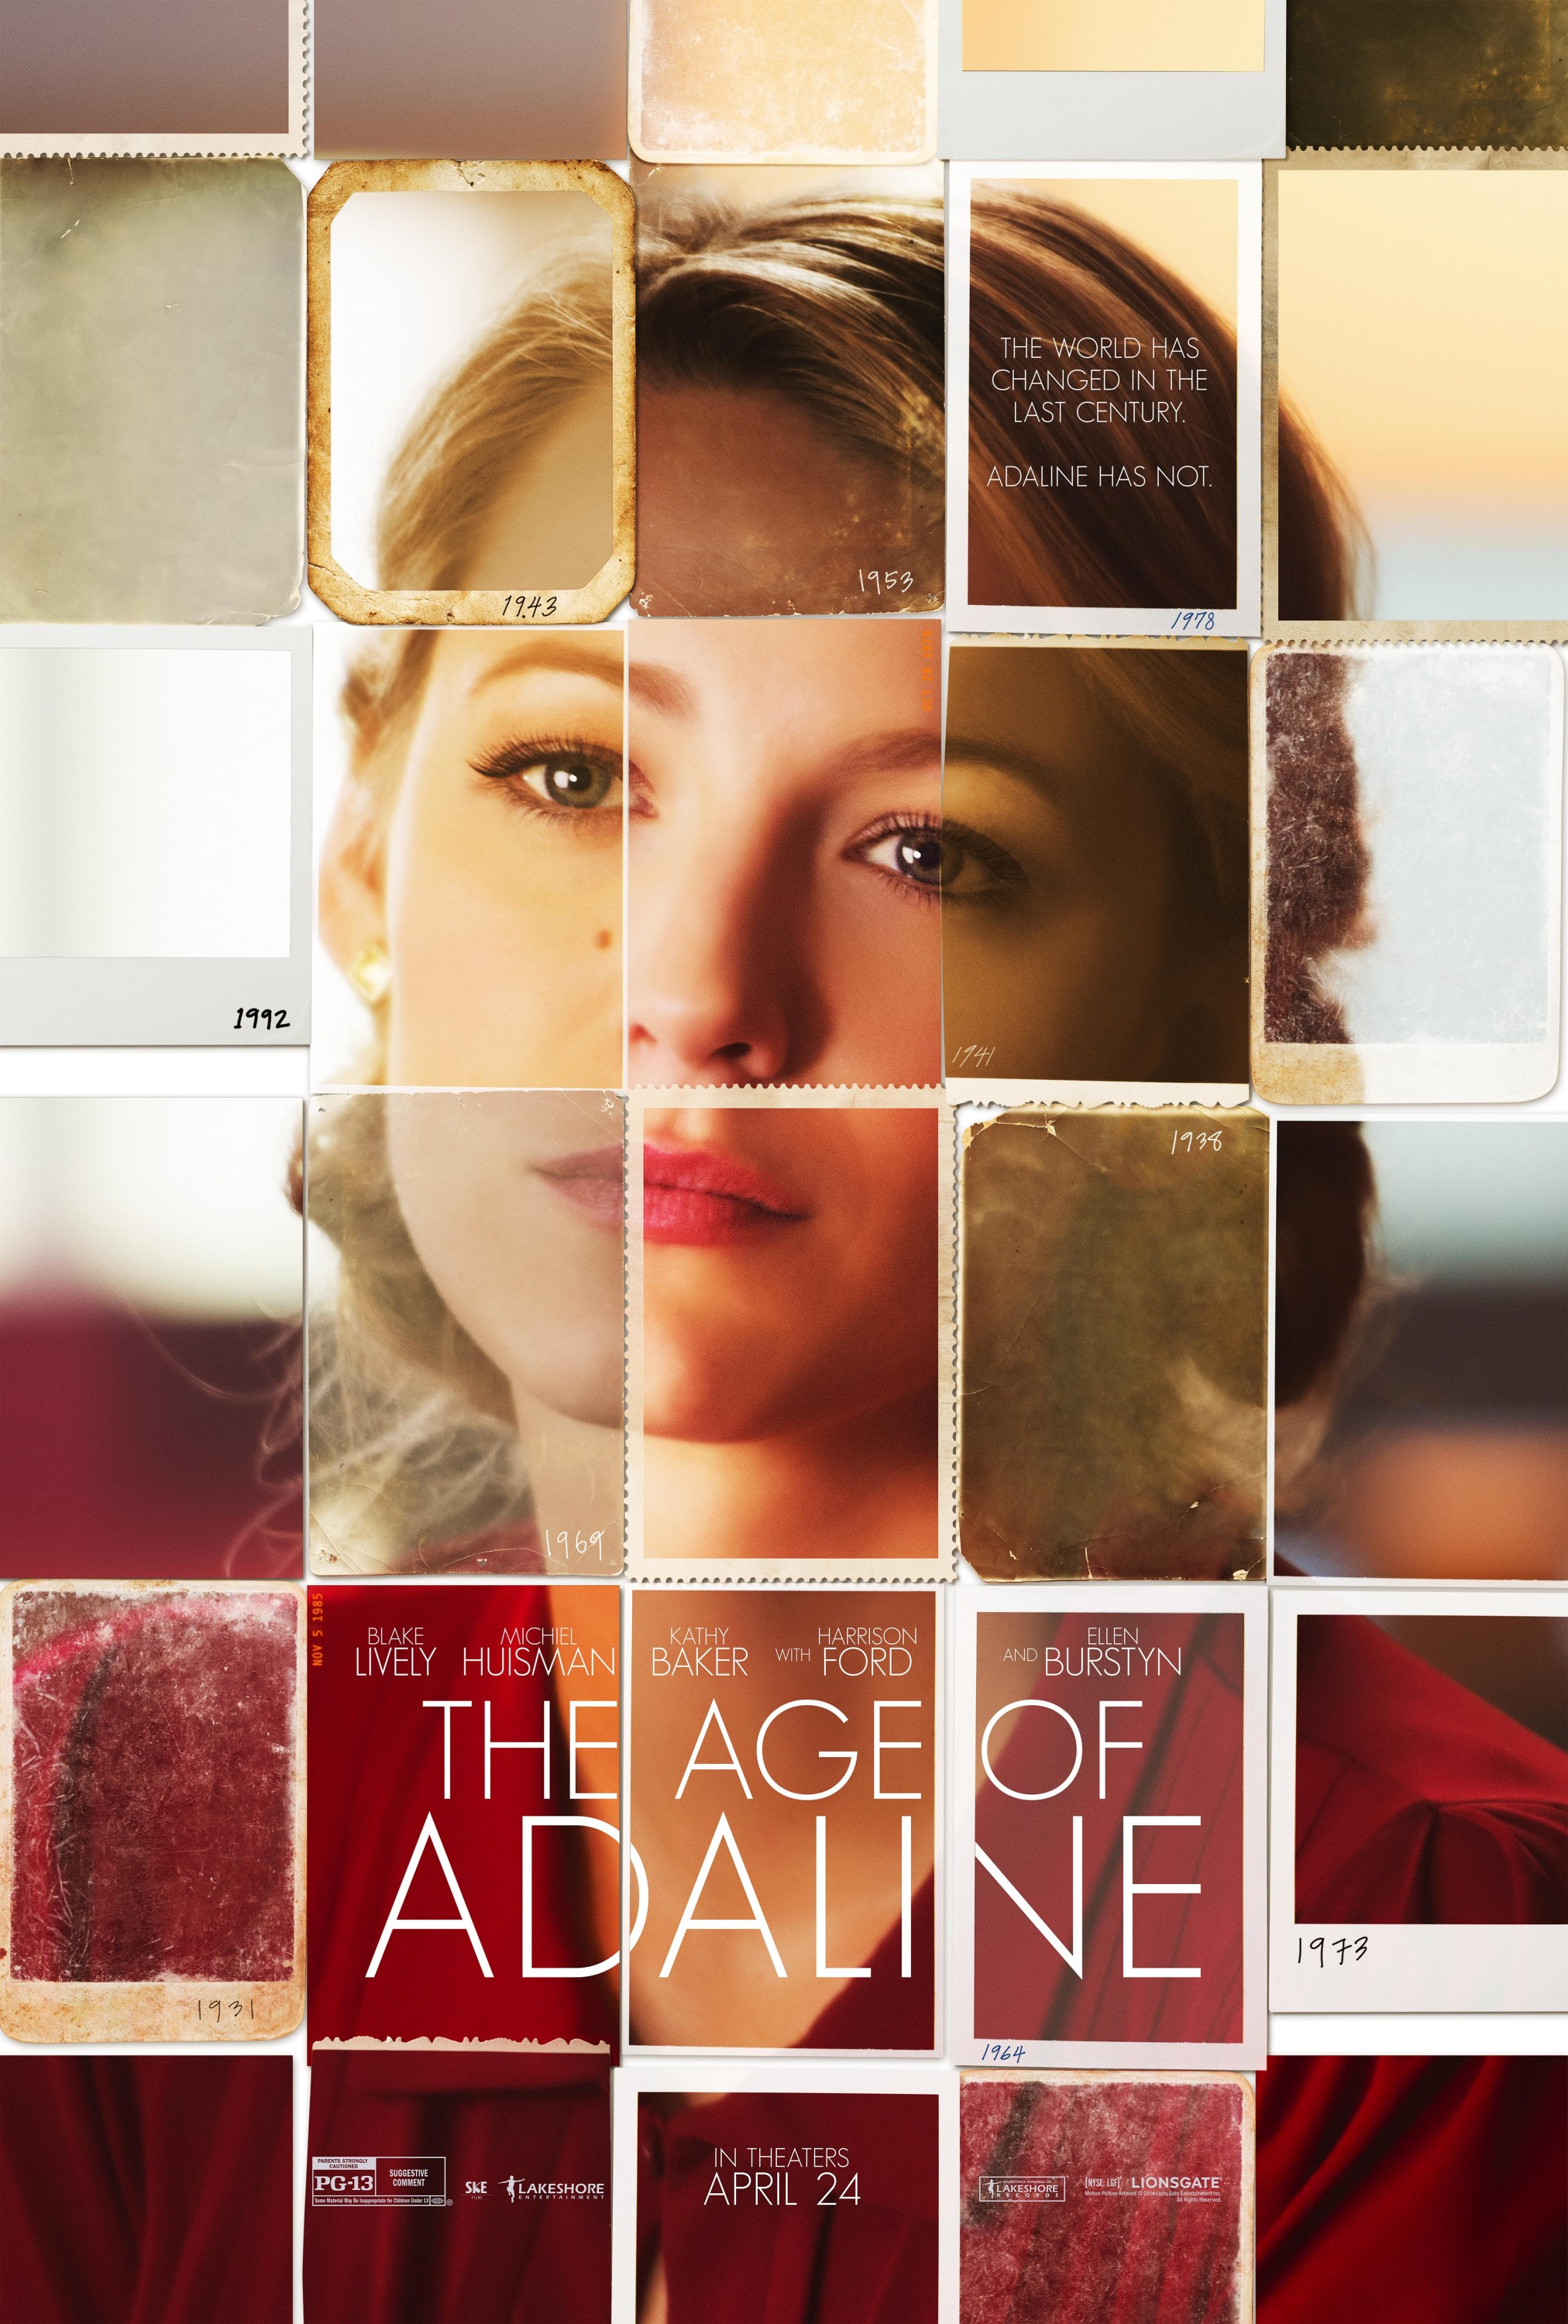 The Age of Adaline-Official Poster Banner XXLG-20NOVEMBRO2014